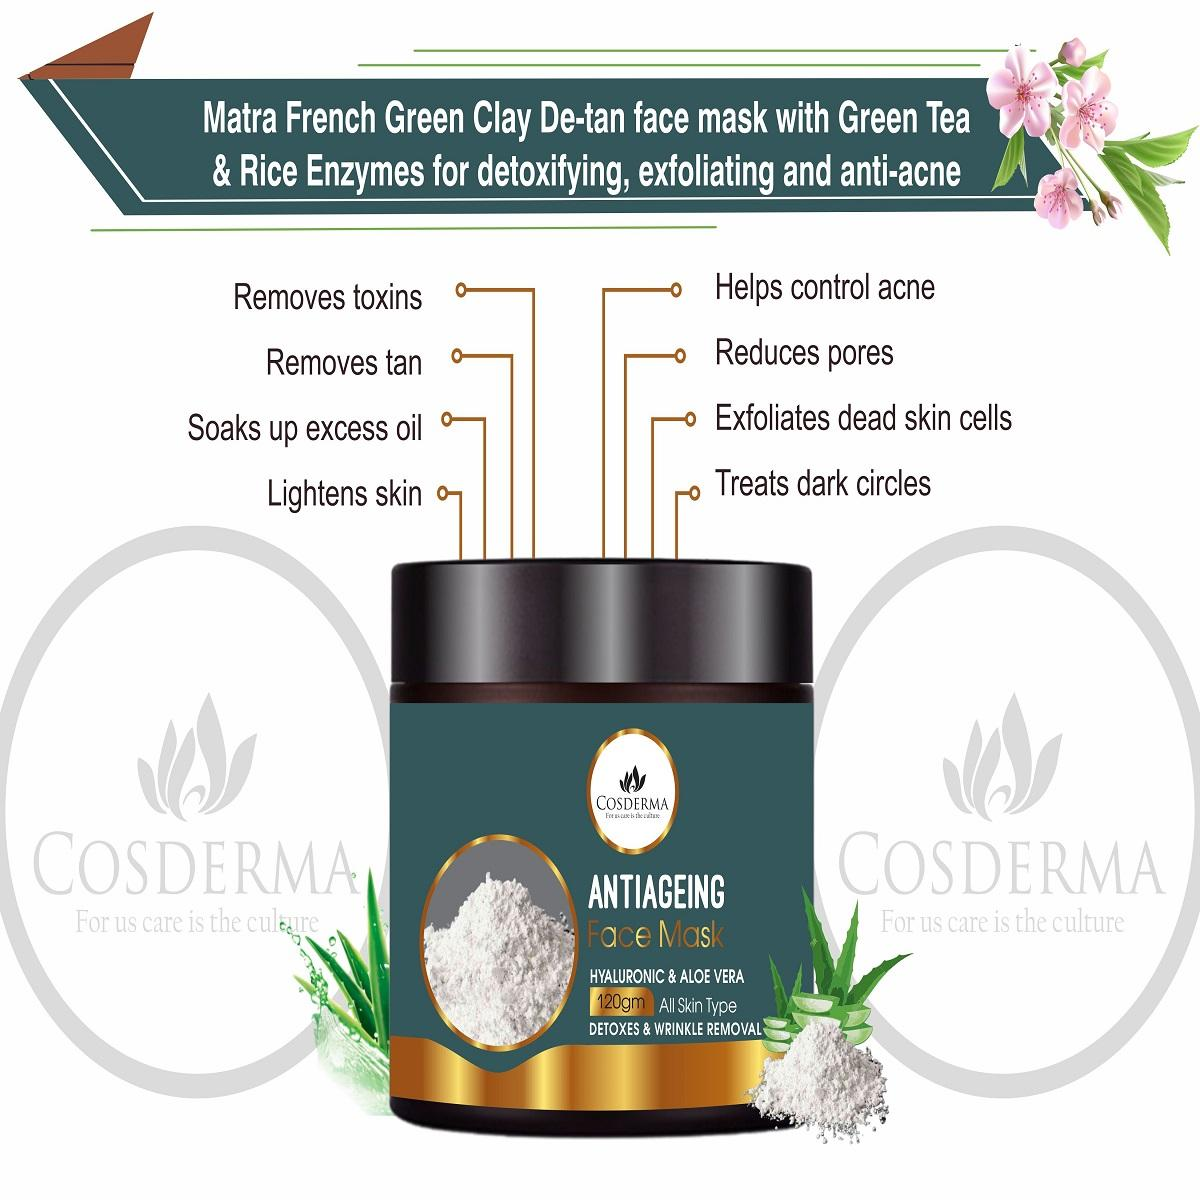 Hyaluronic Acid Face Pack Arginine, Aloe Vera Infused Rich Anti-oxidant Herbal Extracts for skin Tightening & Lifting